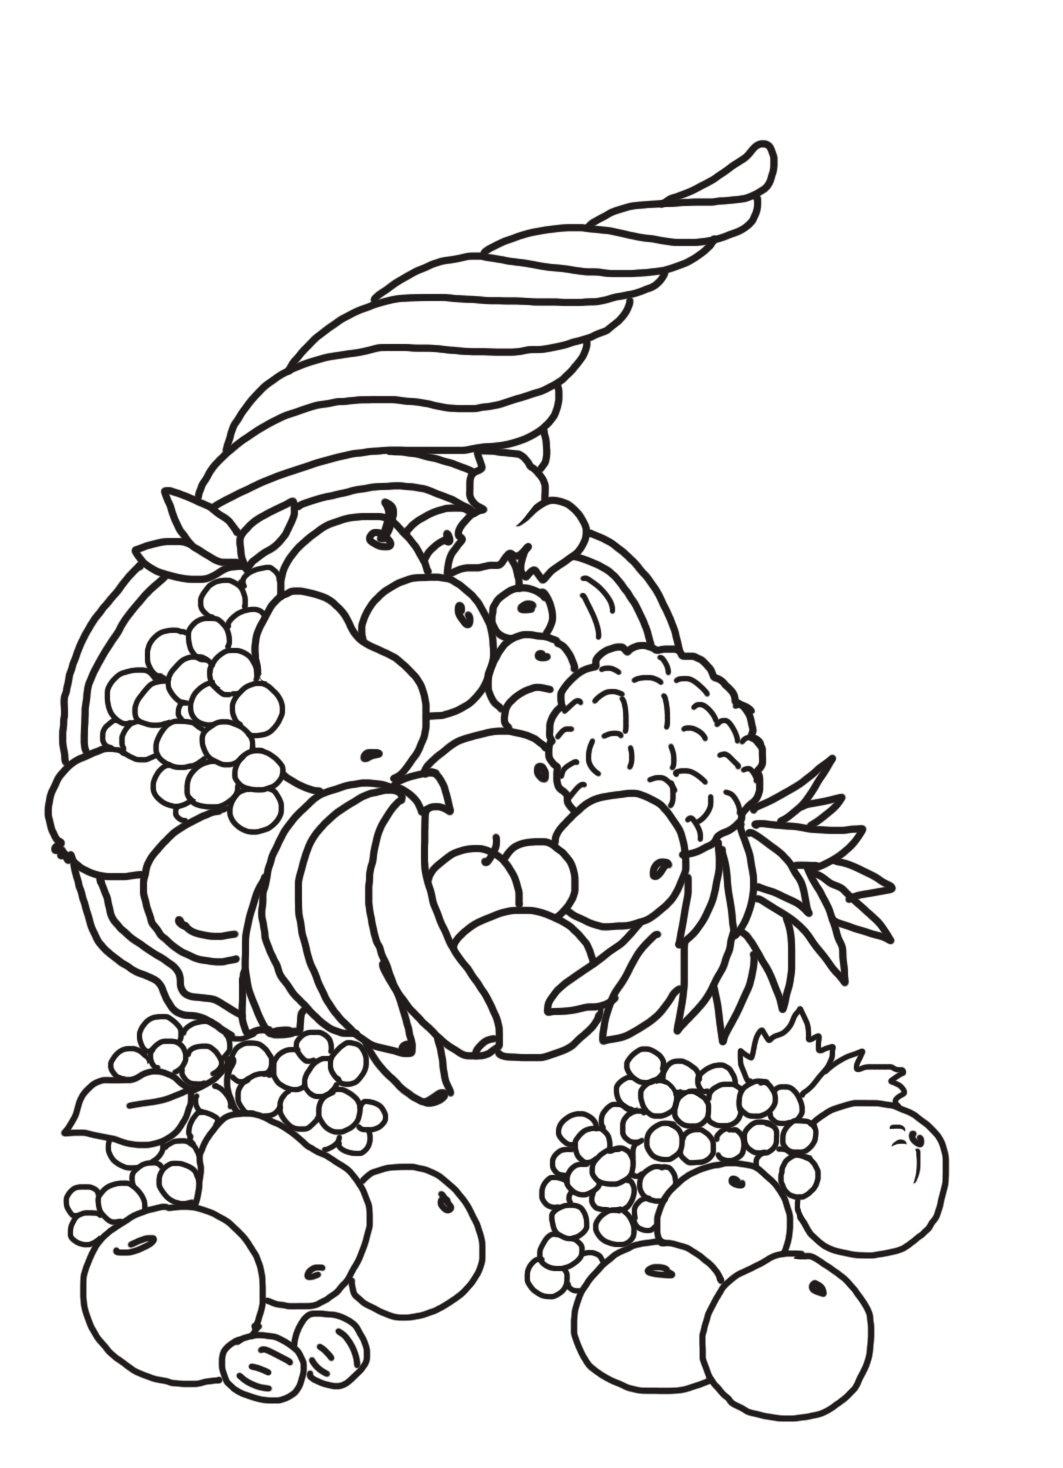 Thanksgiving Cornucopia Drawing at GetDrawings.com | Free for ...